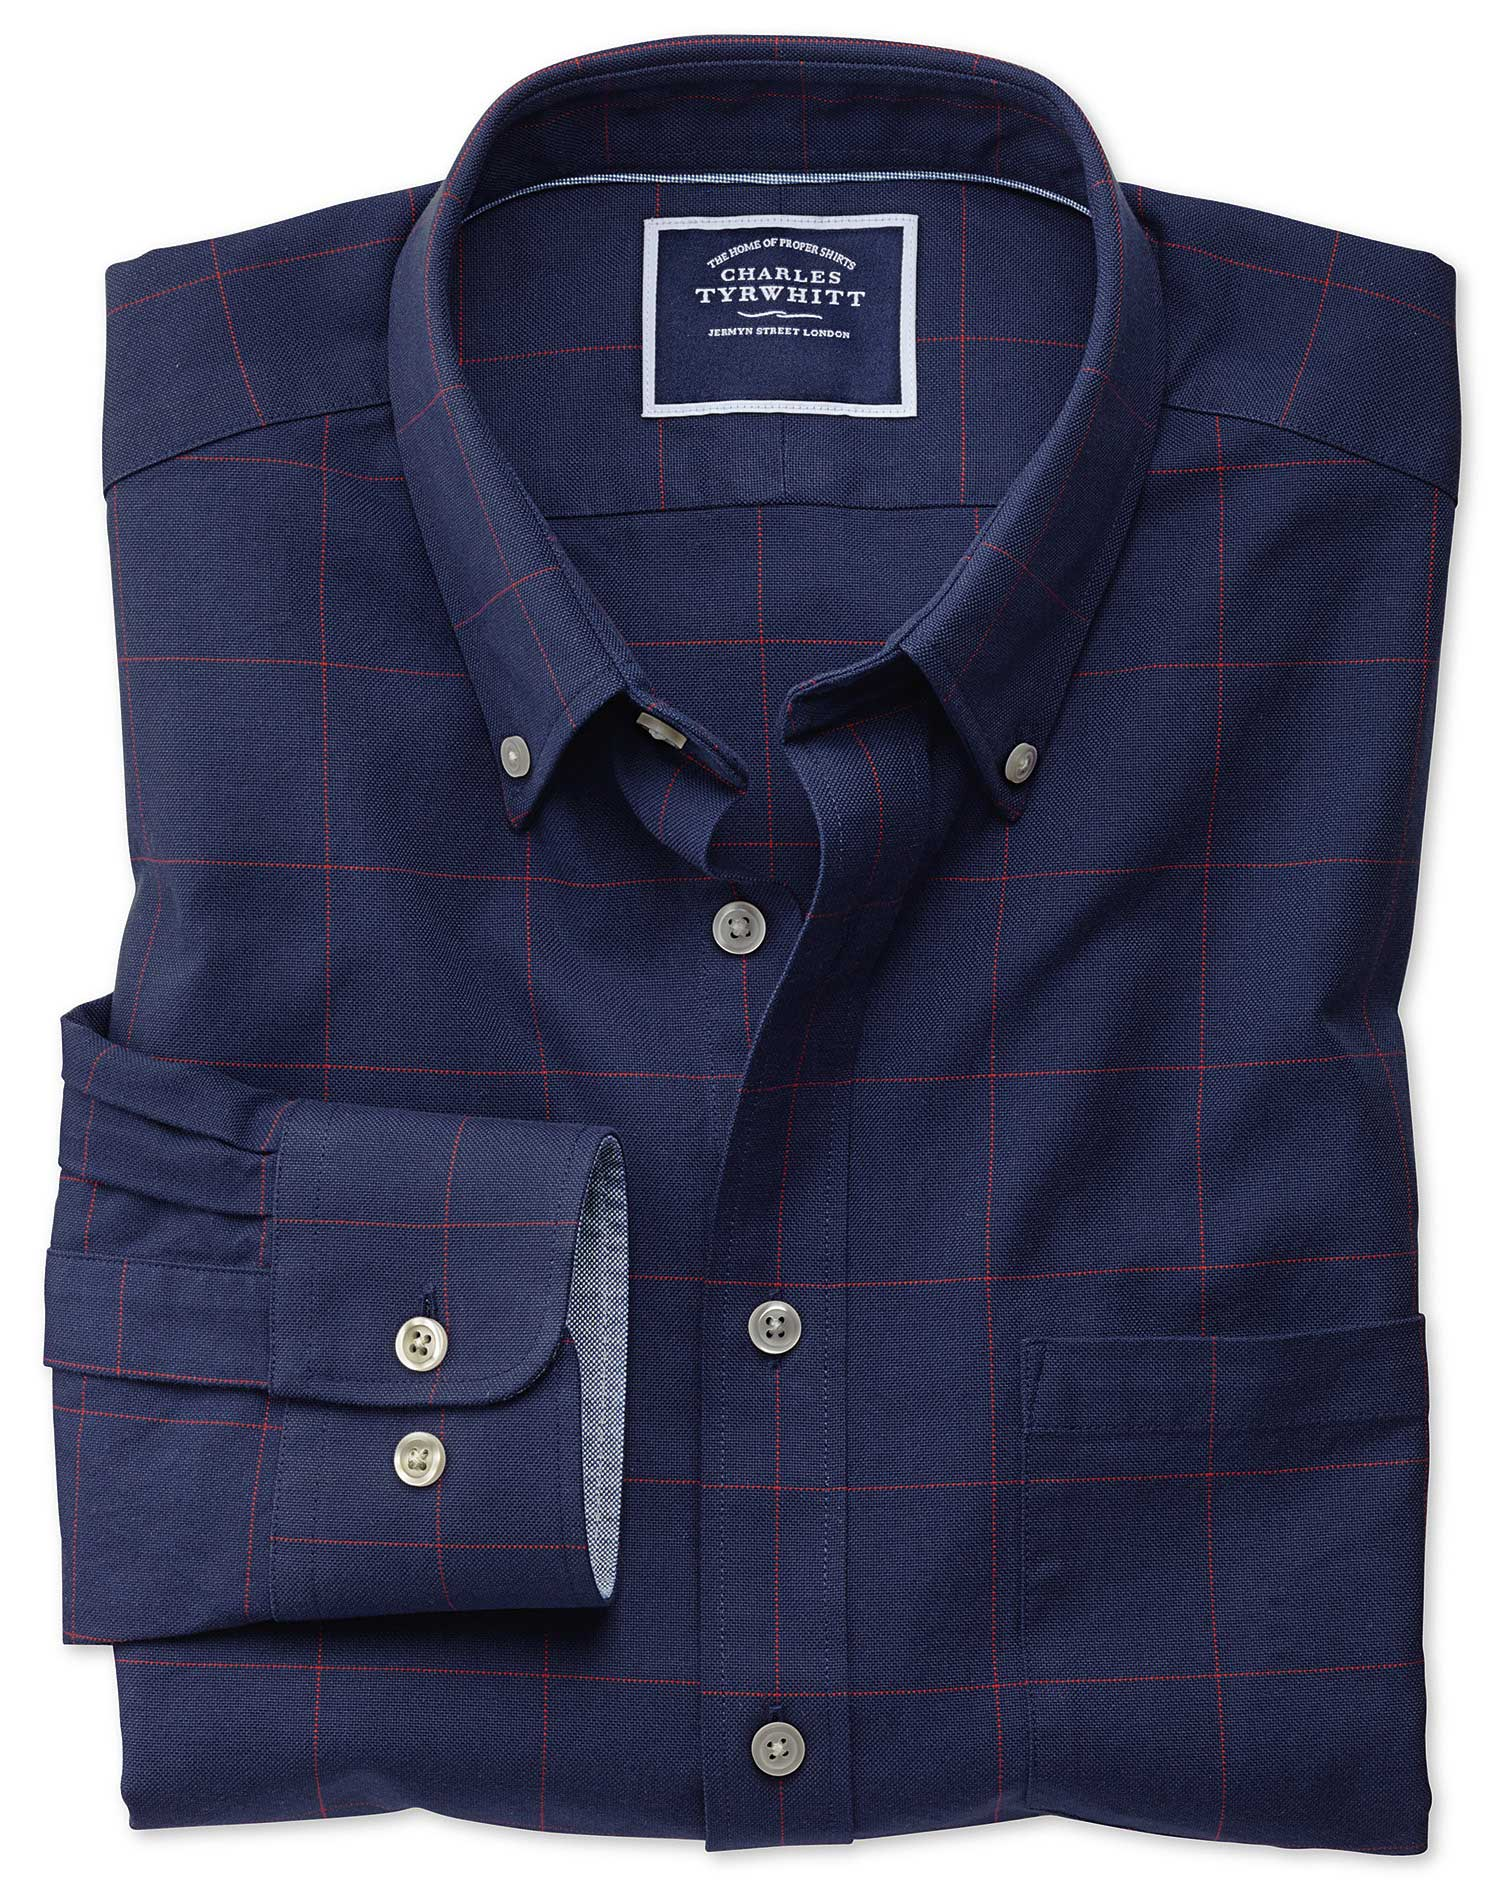 Classic Fit Navy and Red Check Washed Oxford Cotton Shirt Single Cuff Size XL by Charles Tyrwhitt